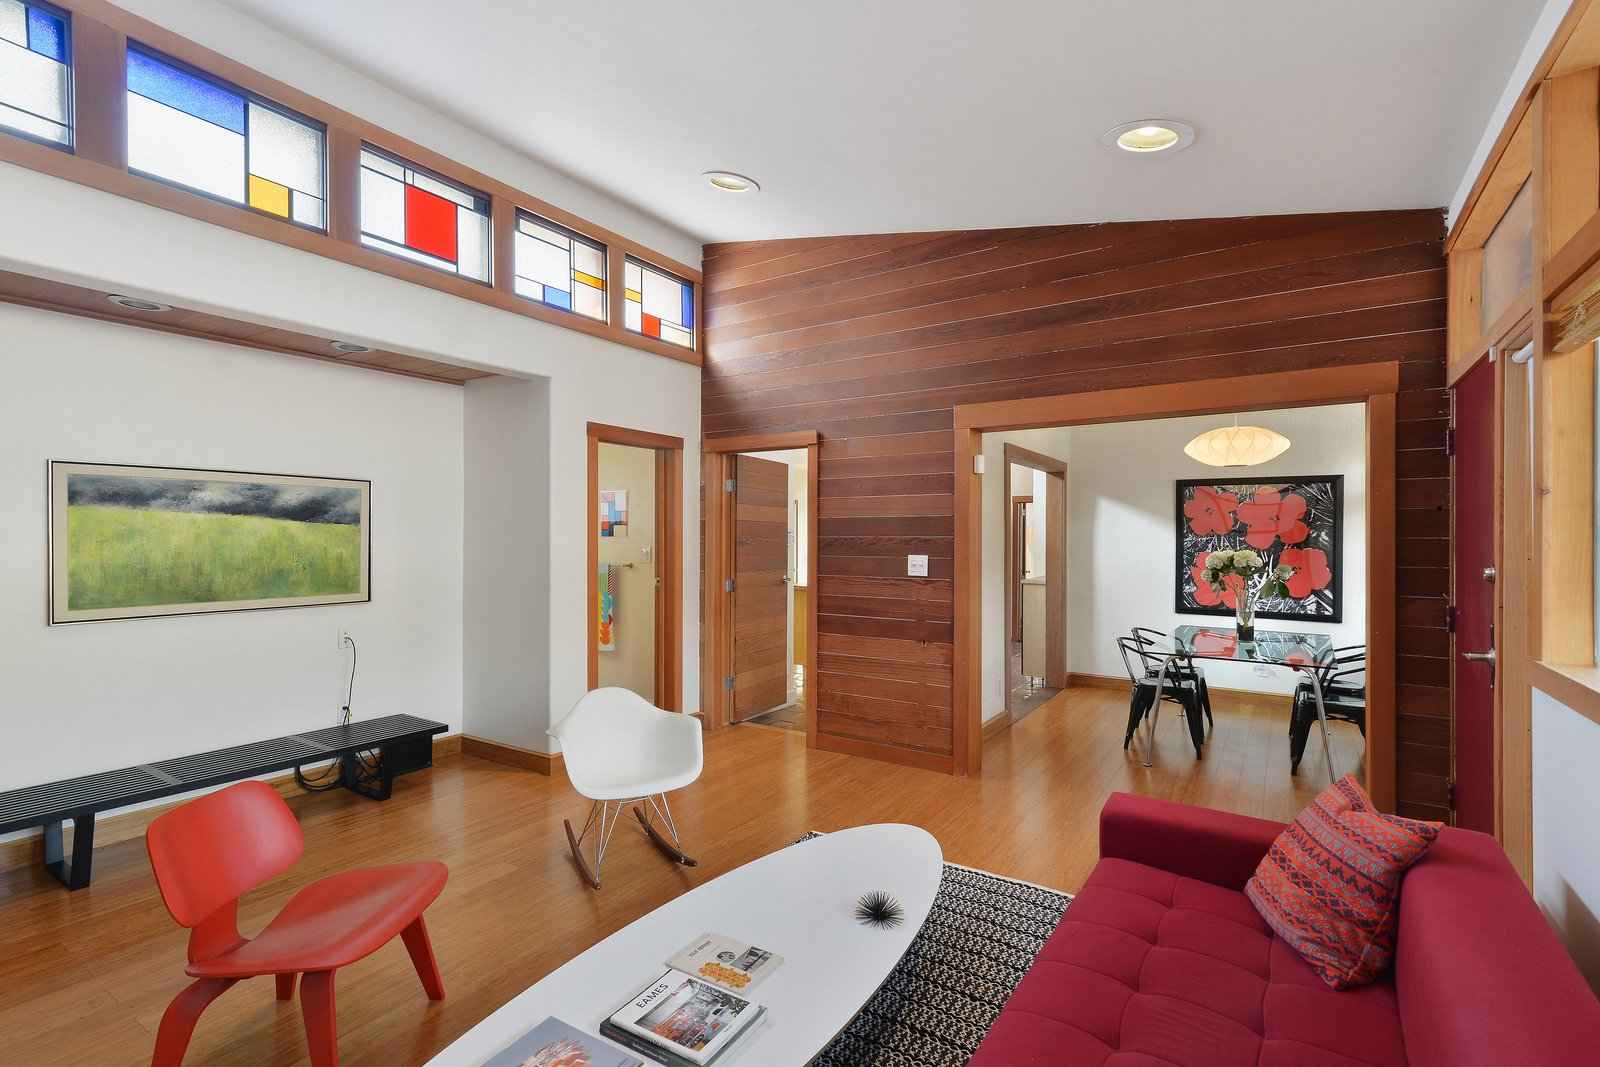 Clerestory windows, outfitted with stained glass in the living room, allow light to bathe nearly every room.  Photo 3 of 12 in Artists Need Apply: This Midcentury Home Comes With an All-Purpose Workshop for $949K